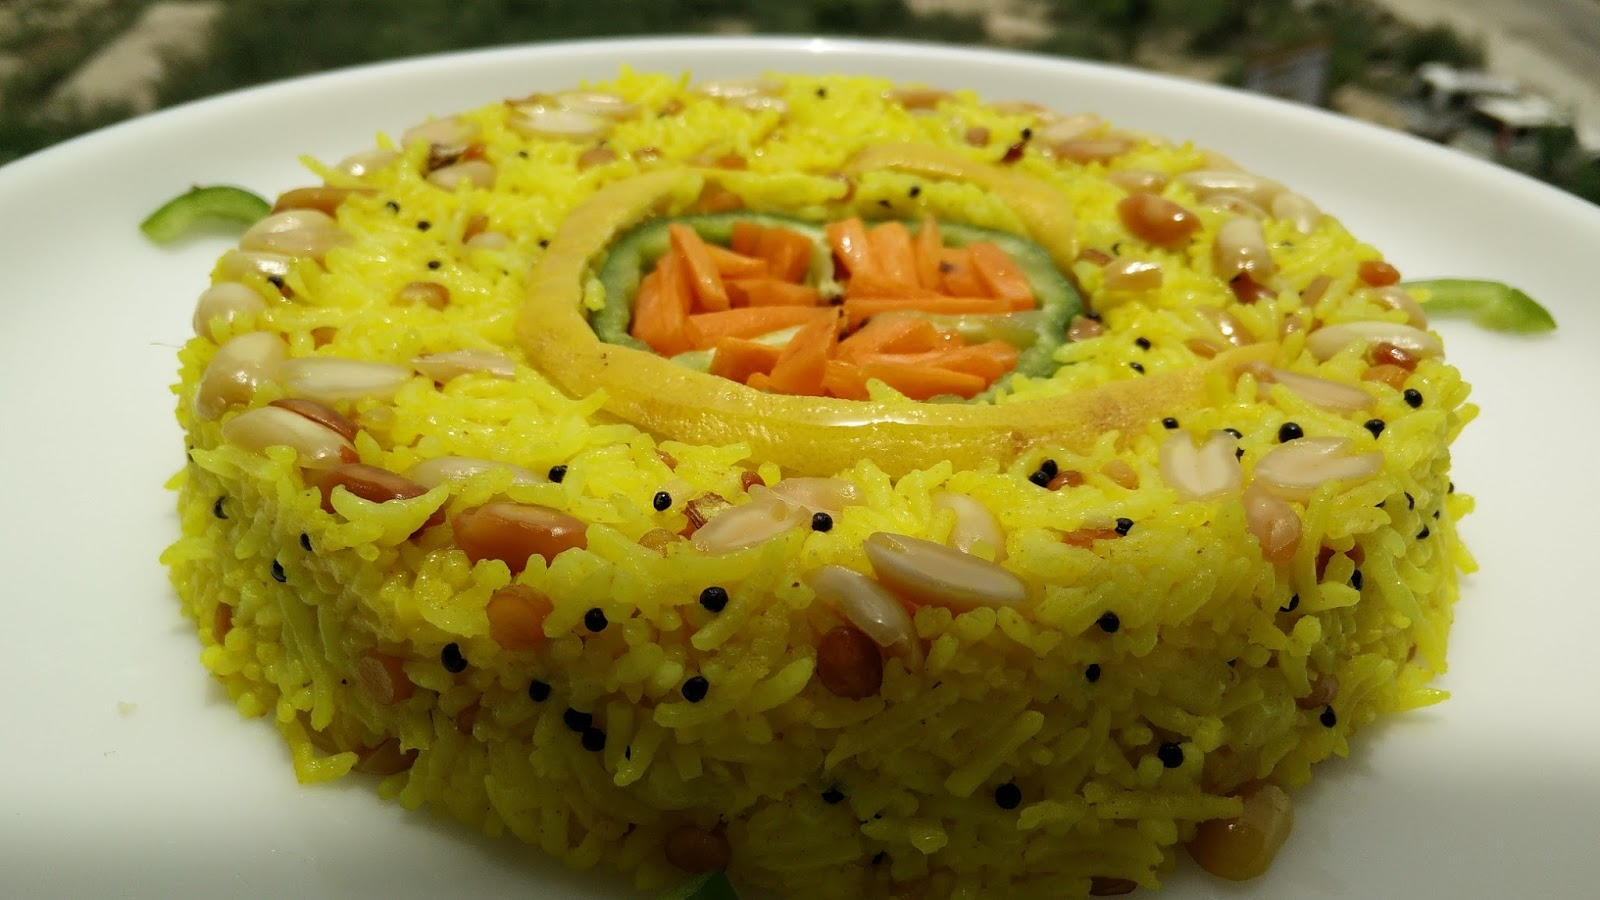 Lemon rice recipe south indian dish healthy kadai lemon rice the name itself brings the flavor of lemon in mouth it is an authentic south indian recipe which is very easy and quick to make forumfinder Images